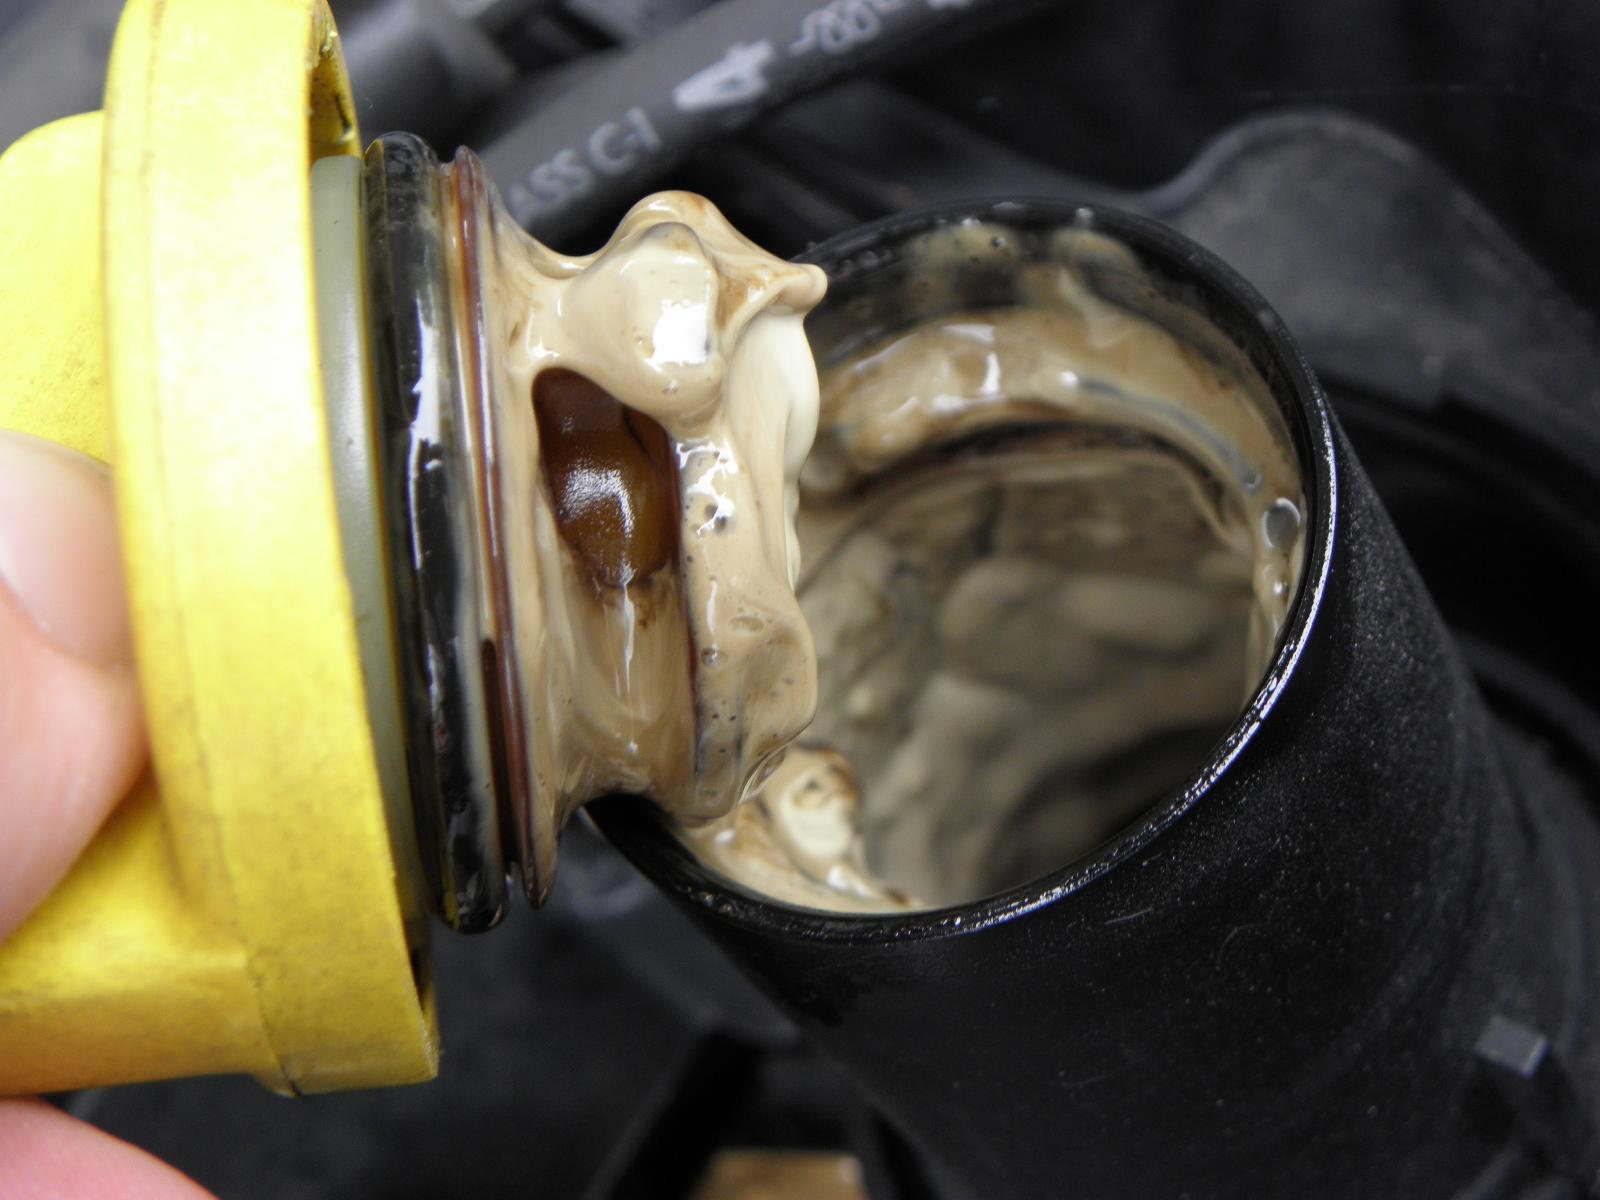 Water in the engine oil